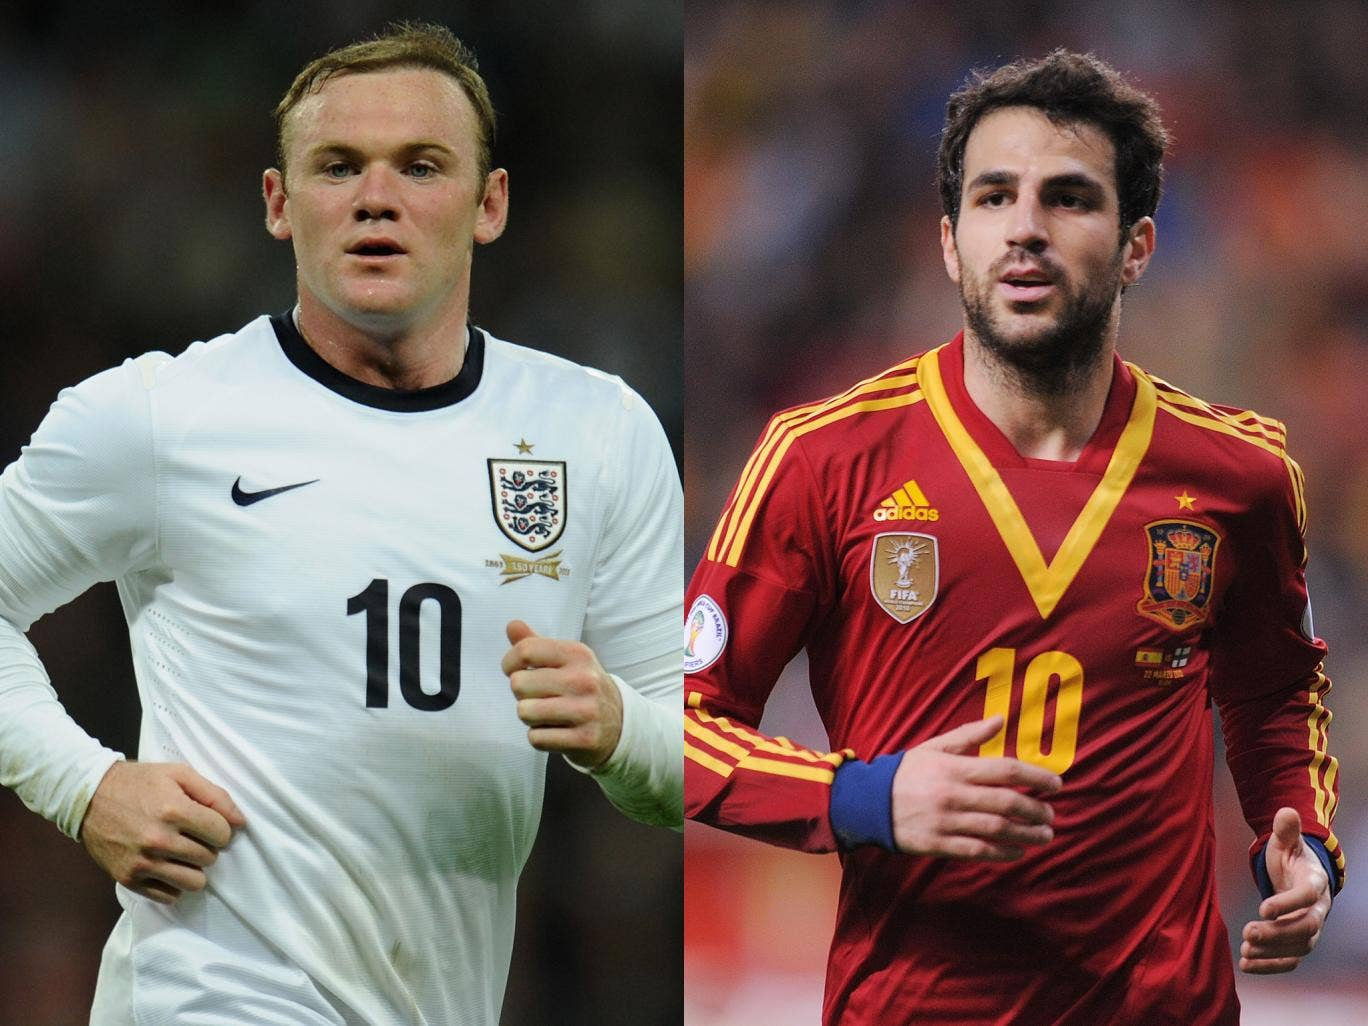 Wayne Rooney and Cesc Fabregas